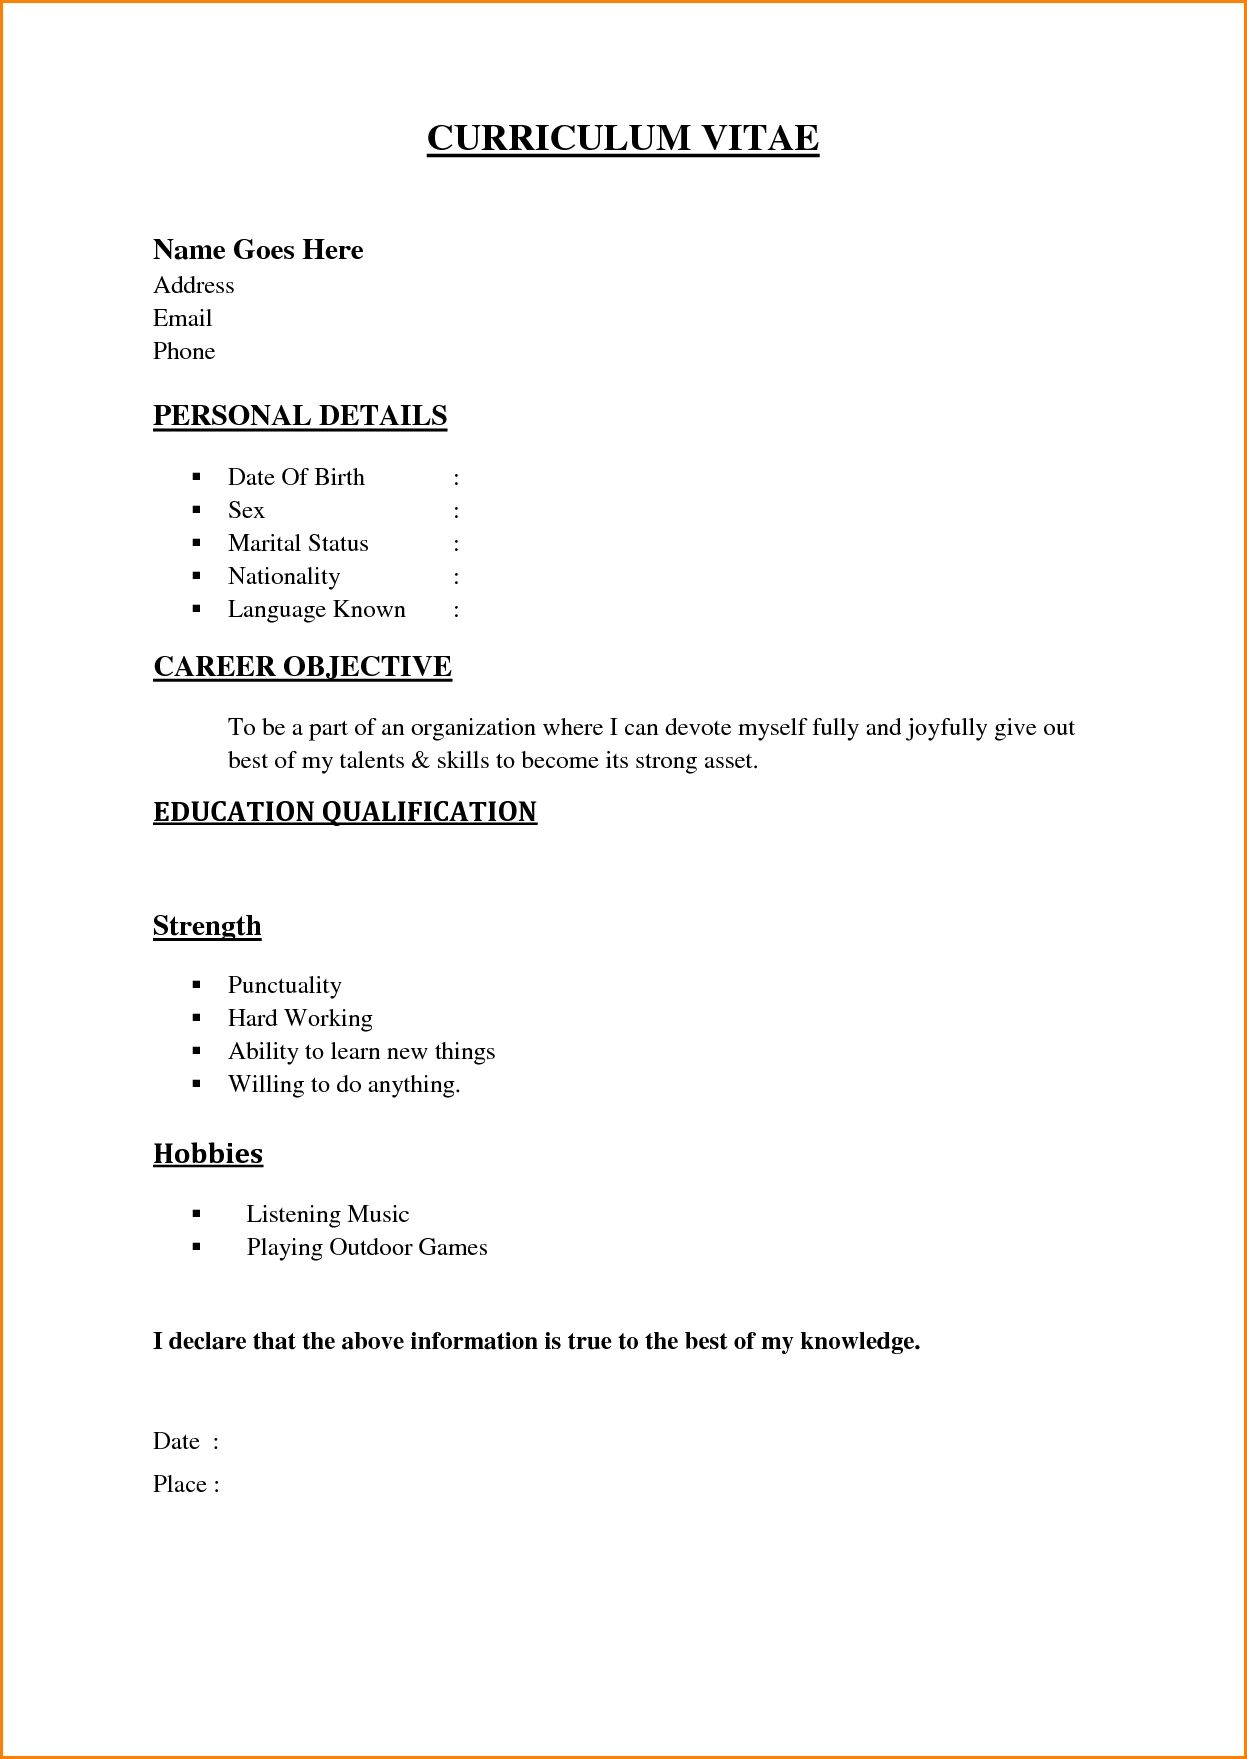 Pin By Veerla Venkat On Fggh Basic Resume Basic Resume Format